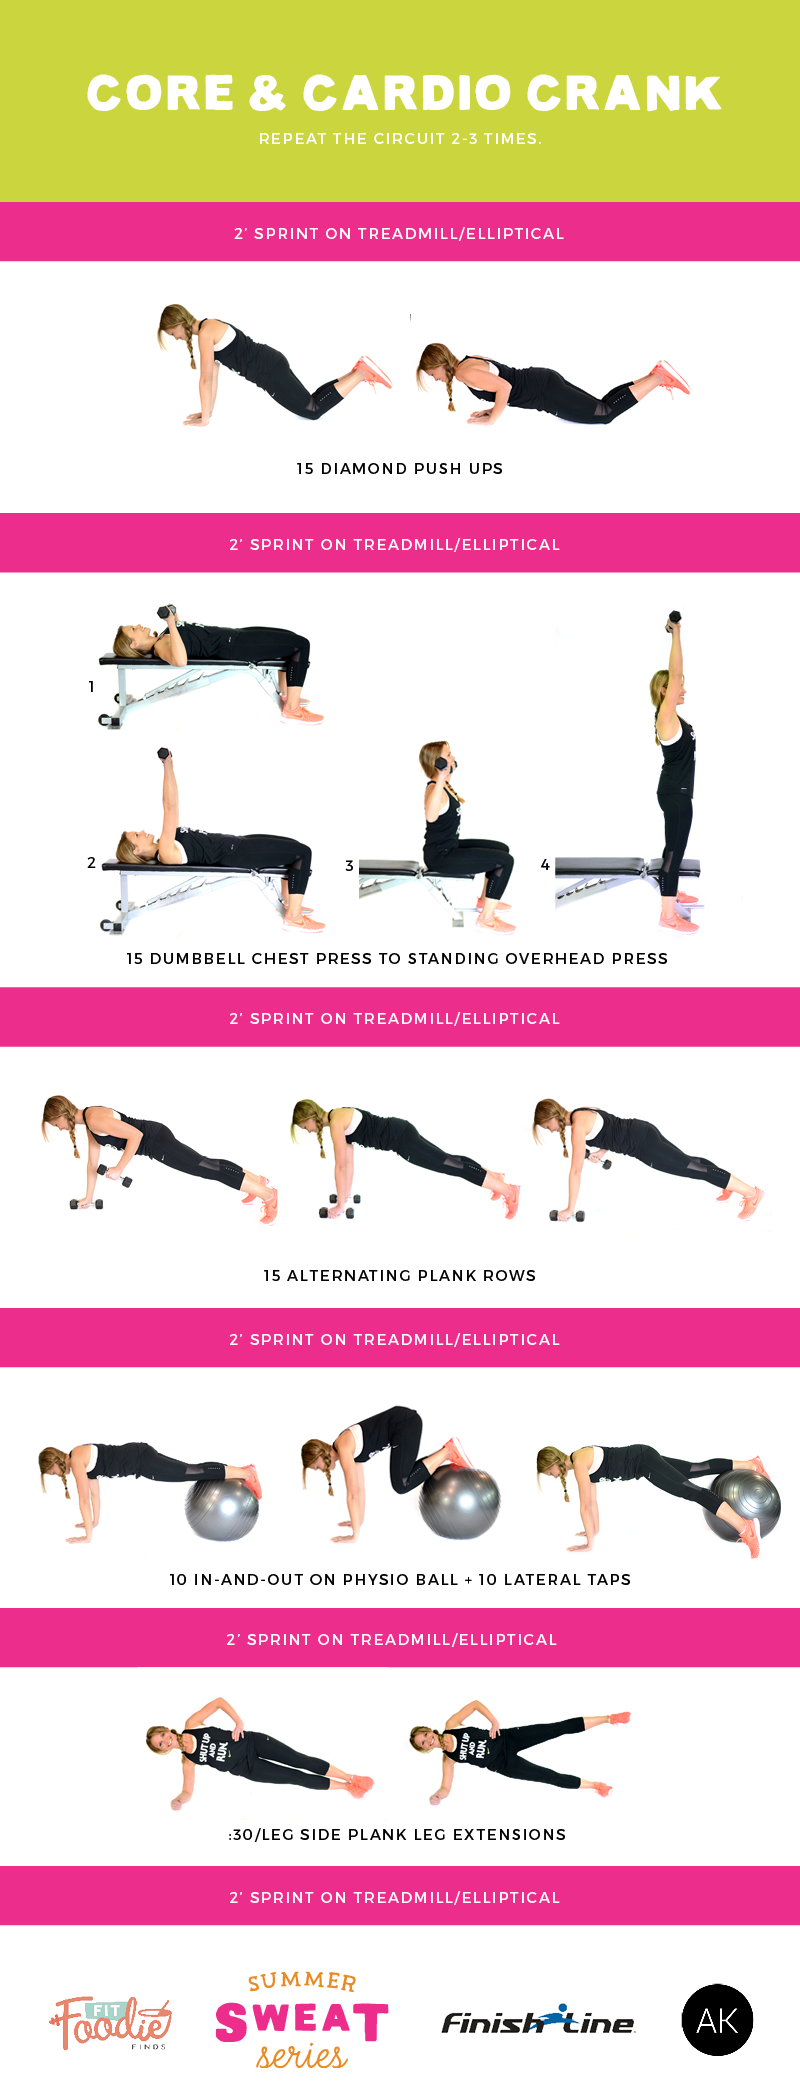 core and cardio crank workout graphic